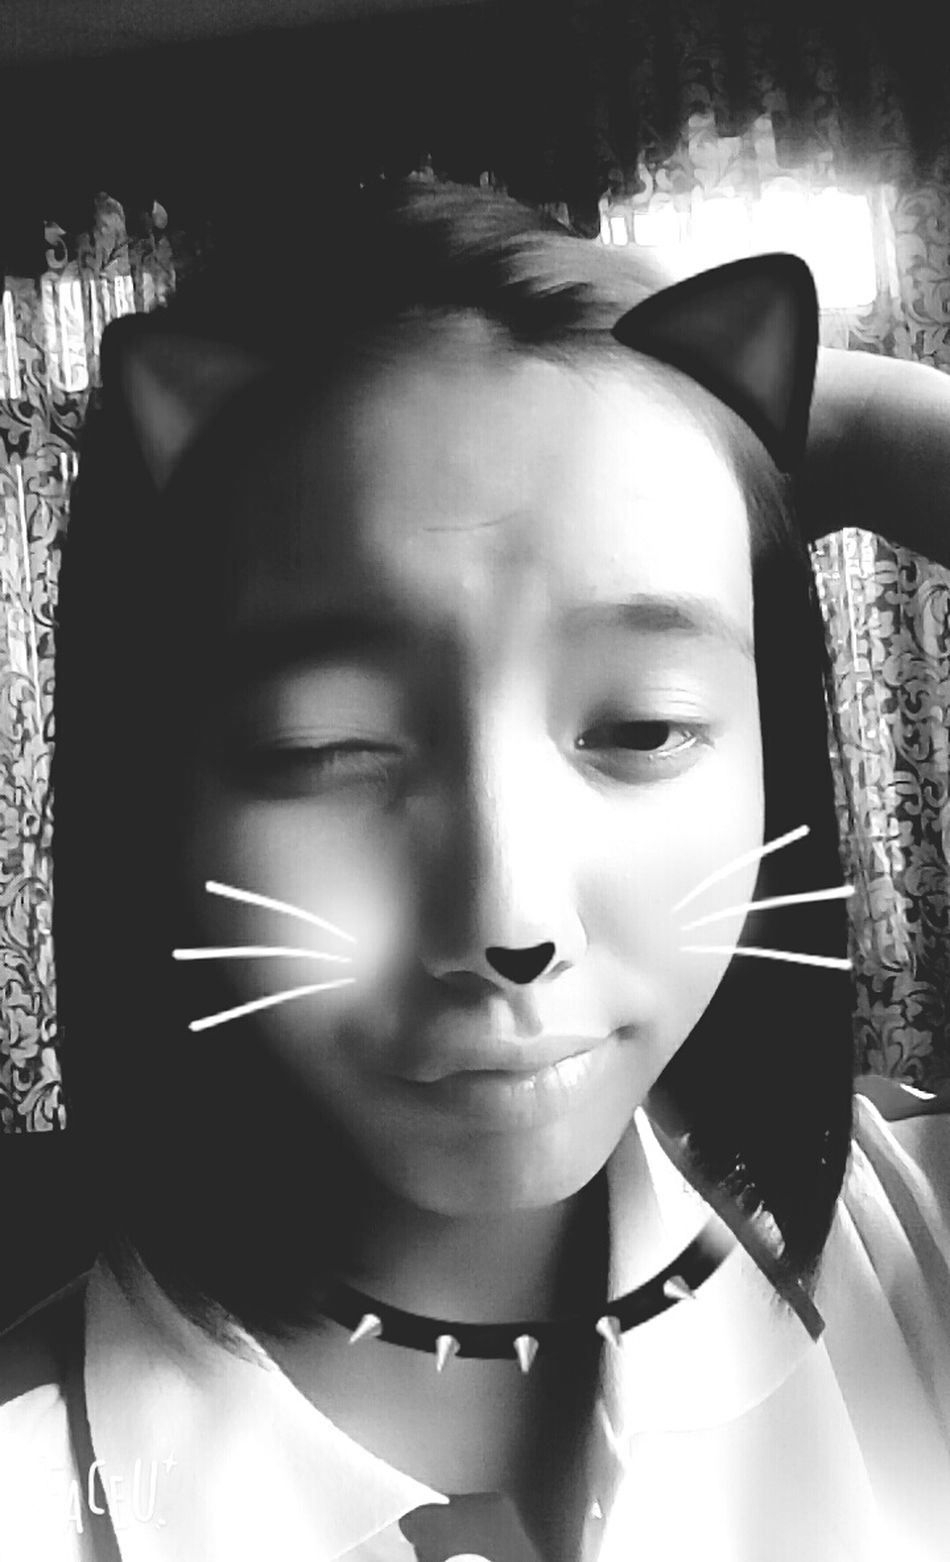 What's up? Cherish The Moment Taste Good Coffeelover Memory Coffee ☕ Beautiful Surprise JUSD Favorite Beauty Picture First Thing I See Difficult Times First Eyeem Photo Cream Hightea Cute Cats Taste Afterschoolselfie AfterSchool!